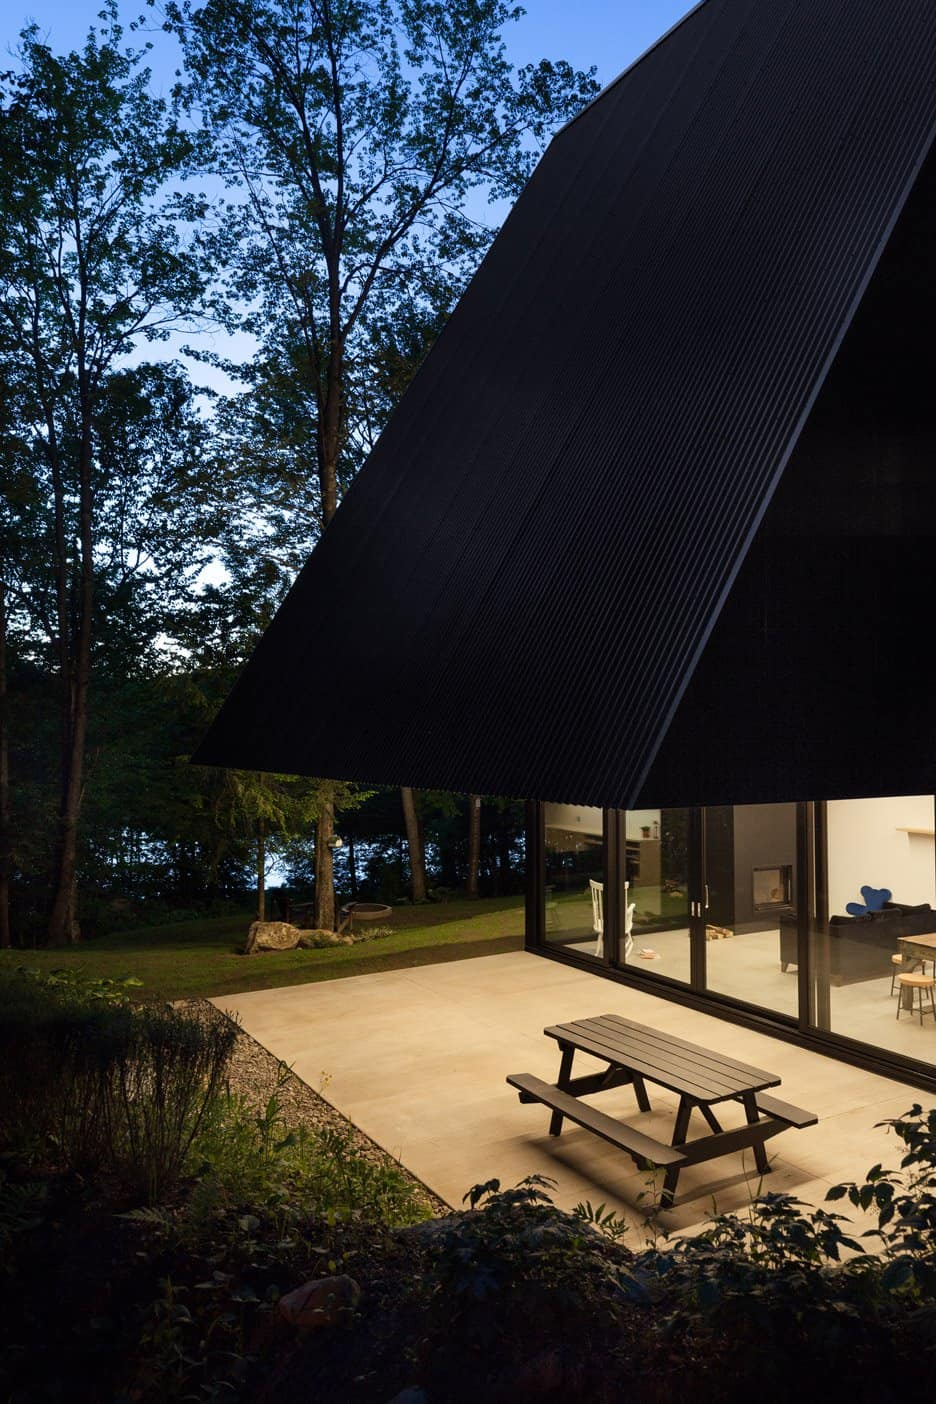 Impeccable Black Cottage in Quebec Forest by Jean Verville (15)